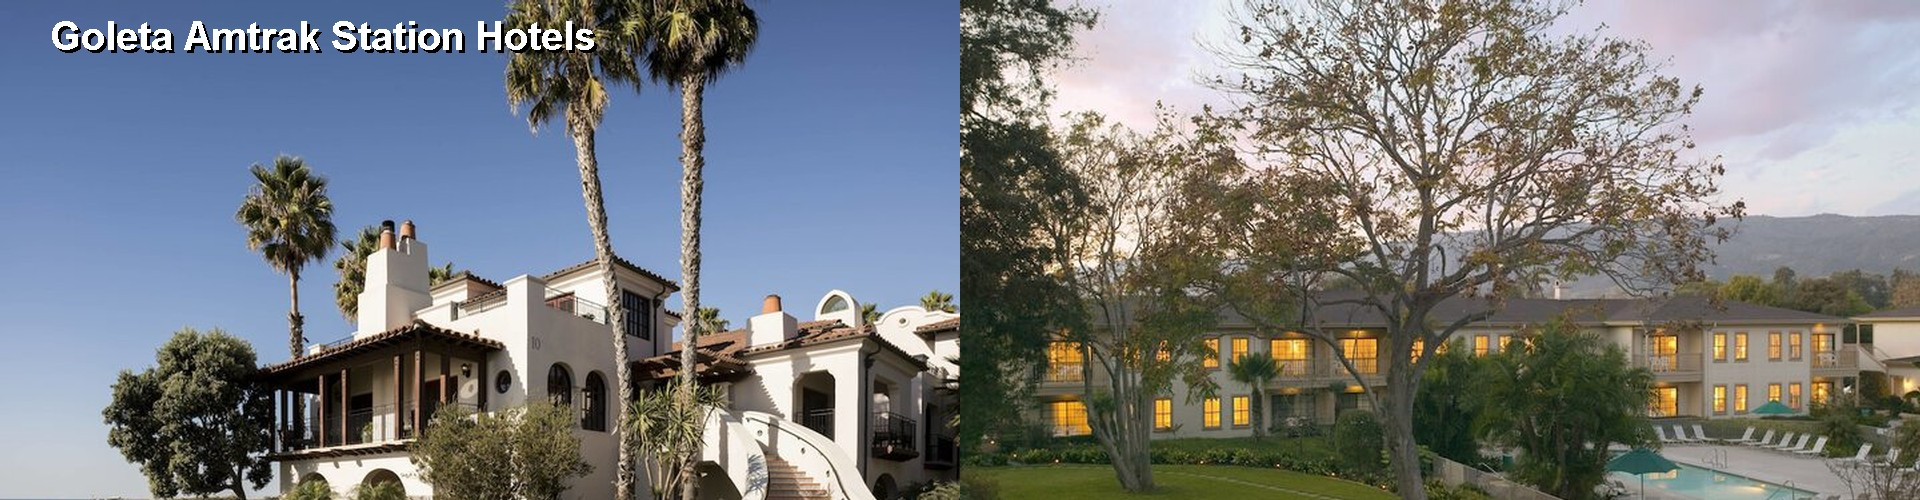 5 Best Hotels near Goleta Amtrak Station